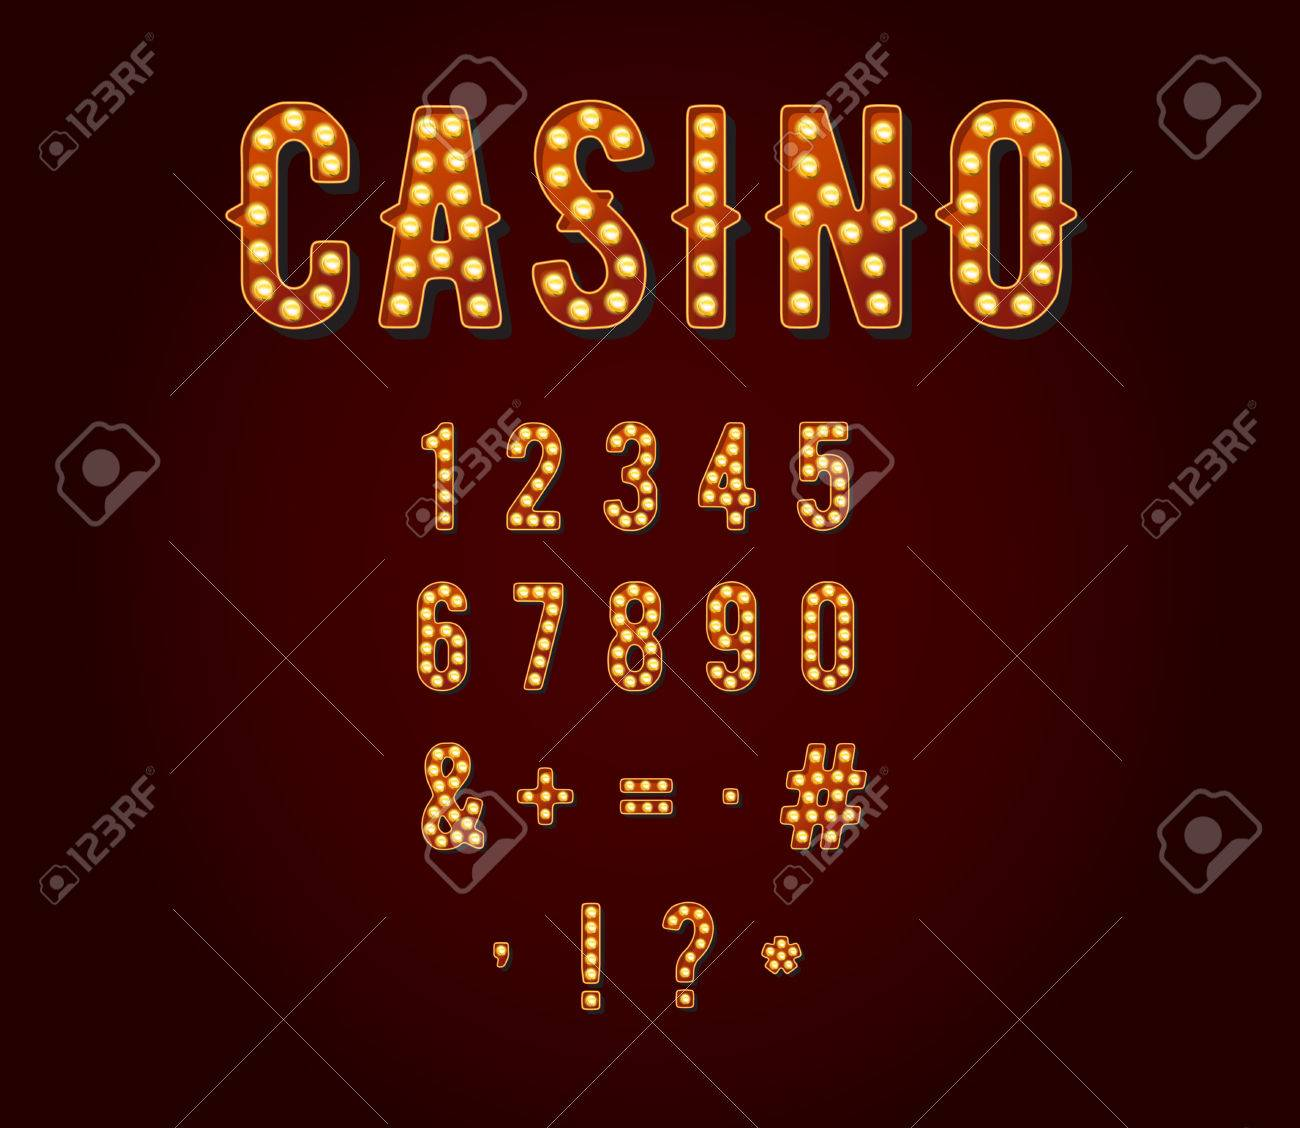 Casino or Broadway Signs style light bulb Digits or Numbers - 50187993